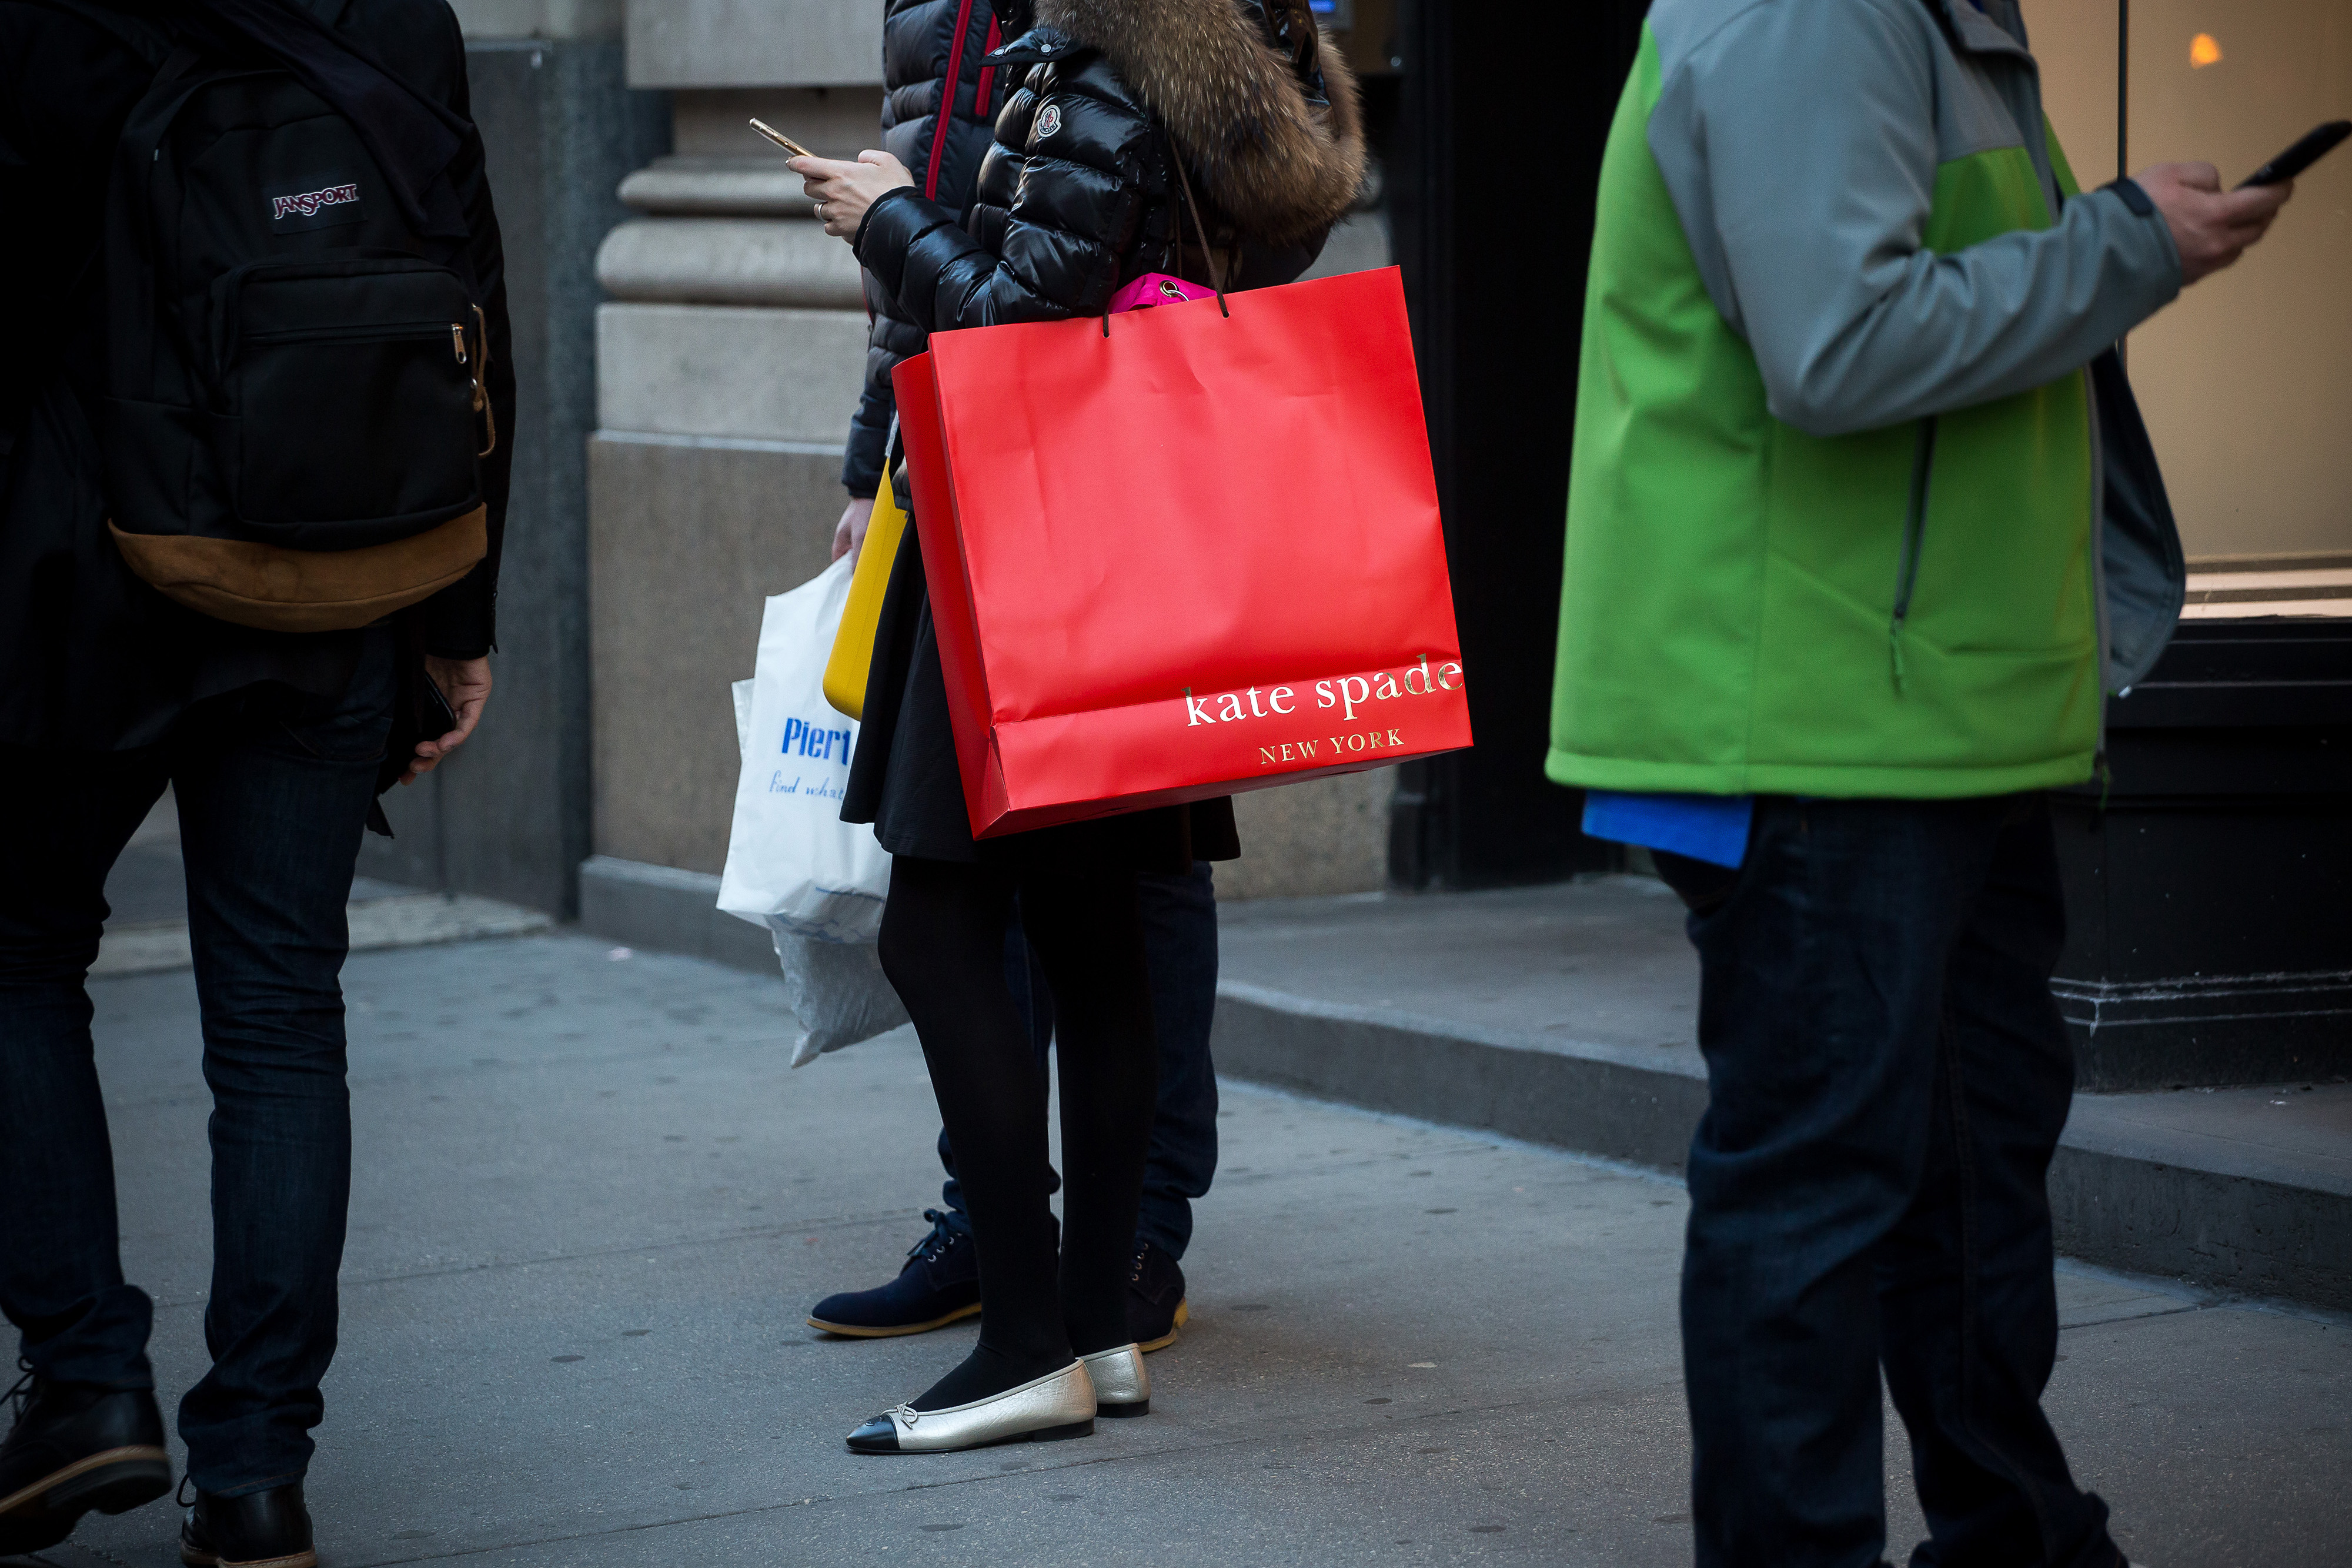 A shopper carries a Kate Spade & Co. bag outside a store in New York, U.S., on Sunday, Feb. 28, 2016.